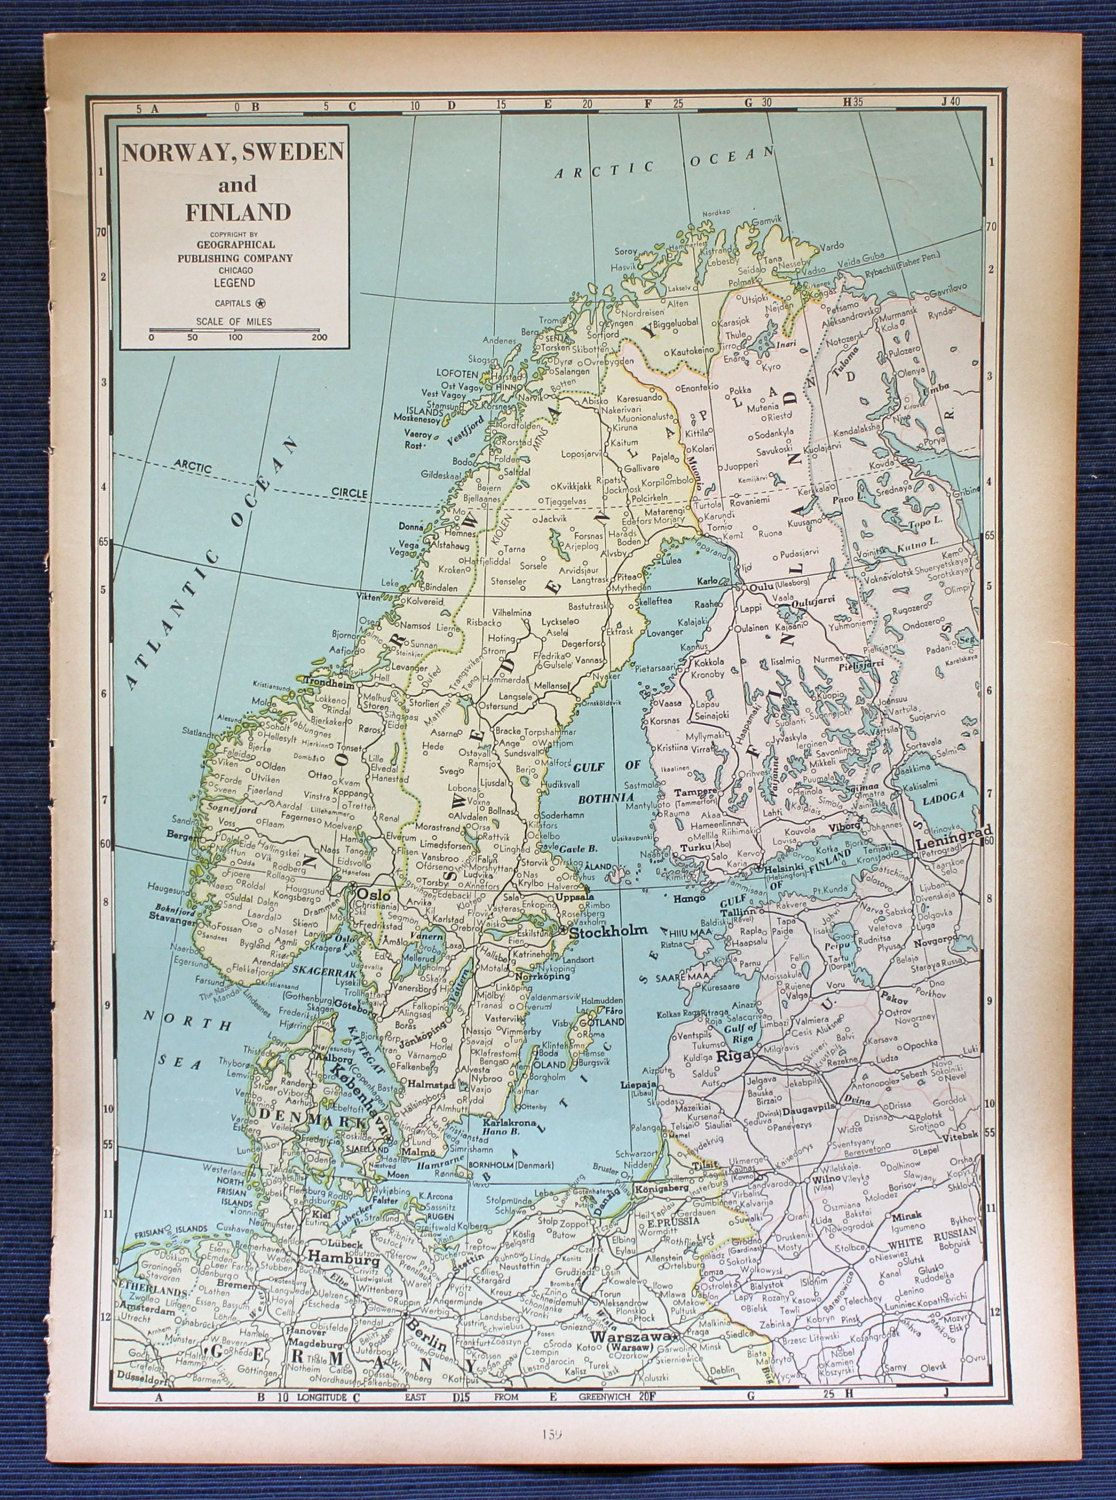 Norway sweden and finland or japan manchukuo chosen large map 1941 norway sweden and finland or japan manchukuo chosen large map gumiabroncs Gallery